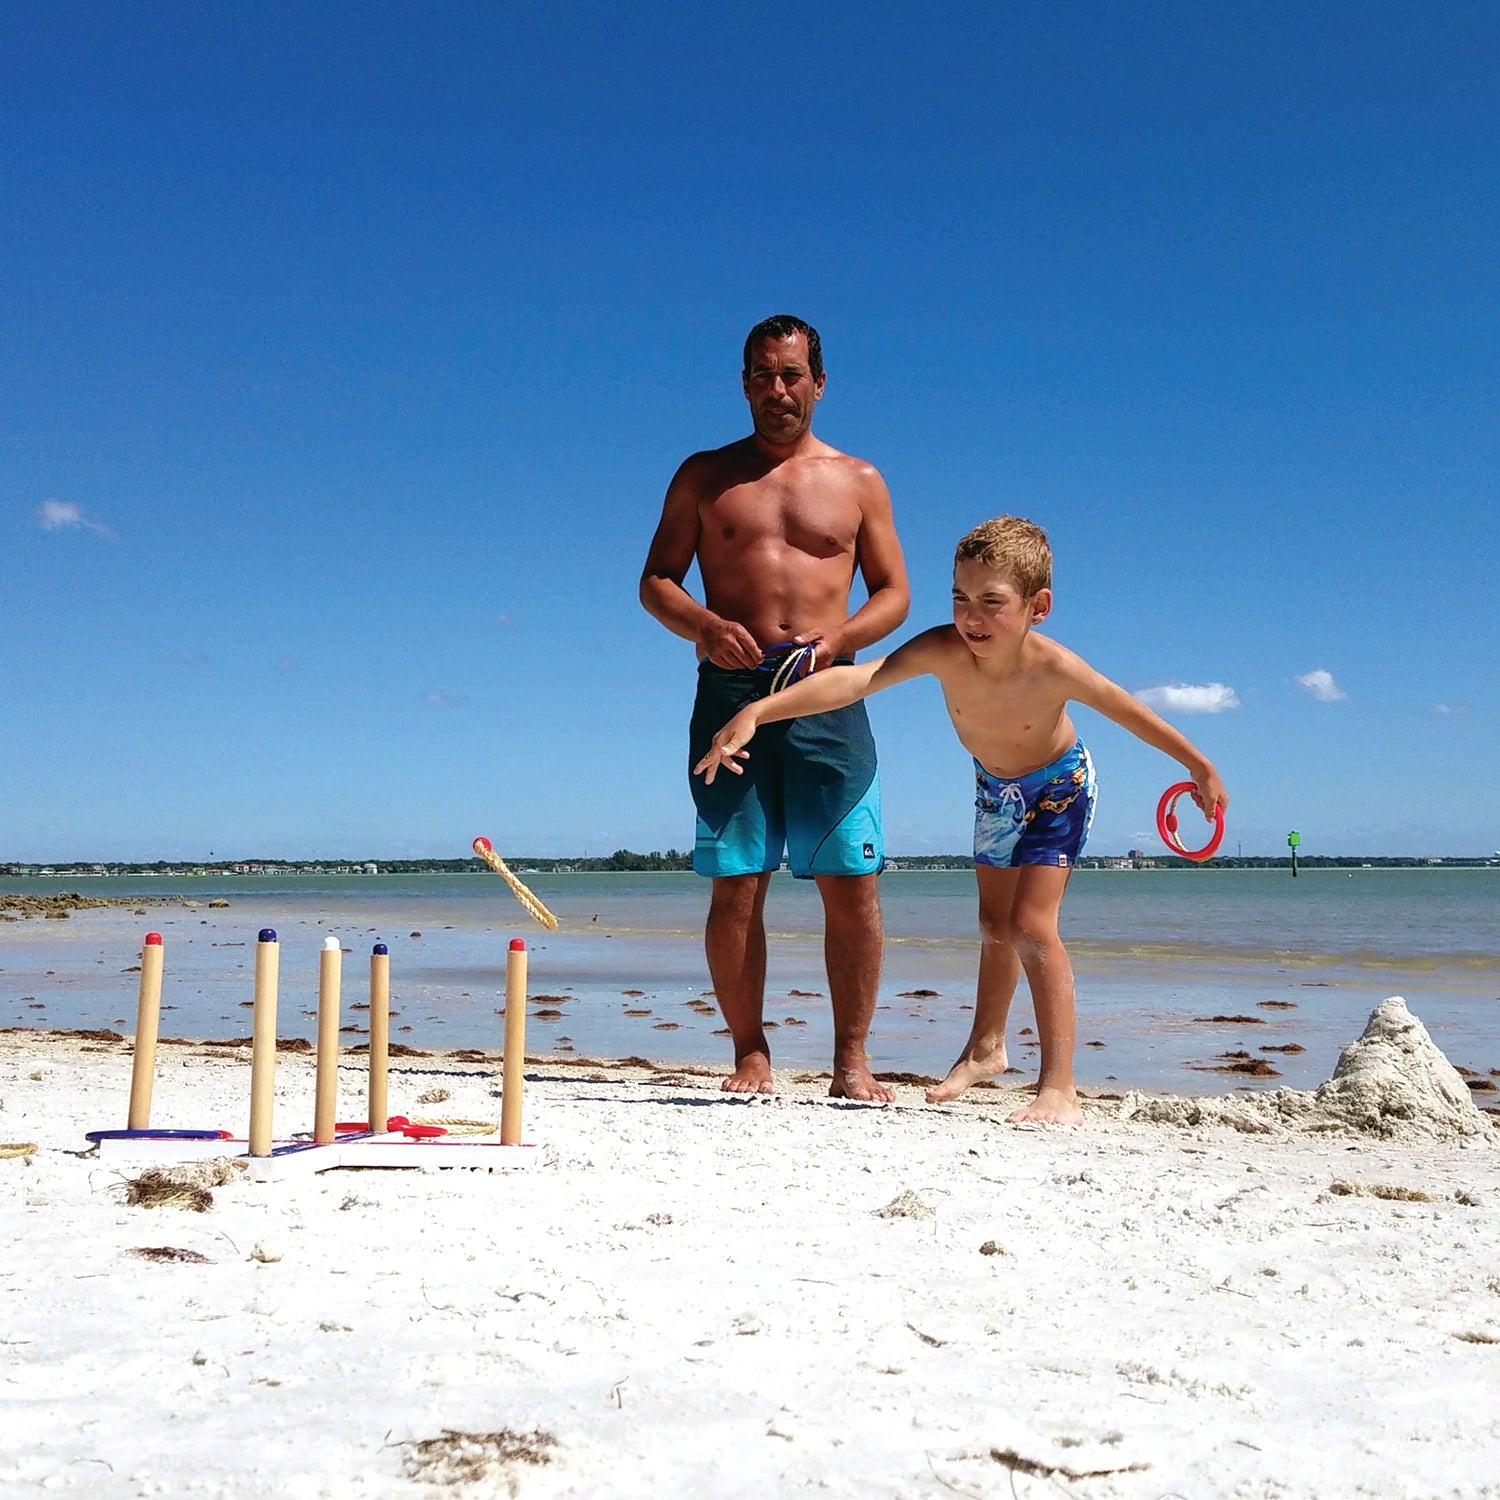 Dad and son playing Ring Toss at the beach having fun by Funsparks